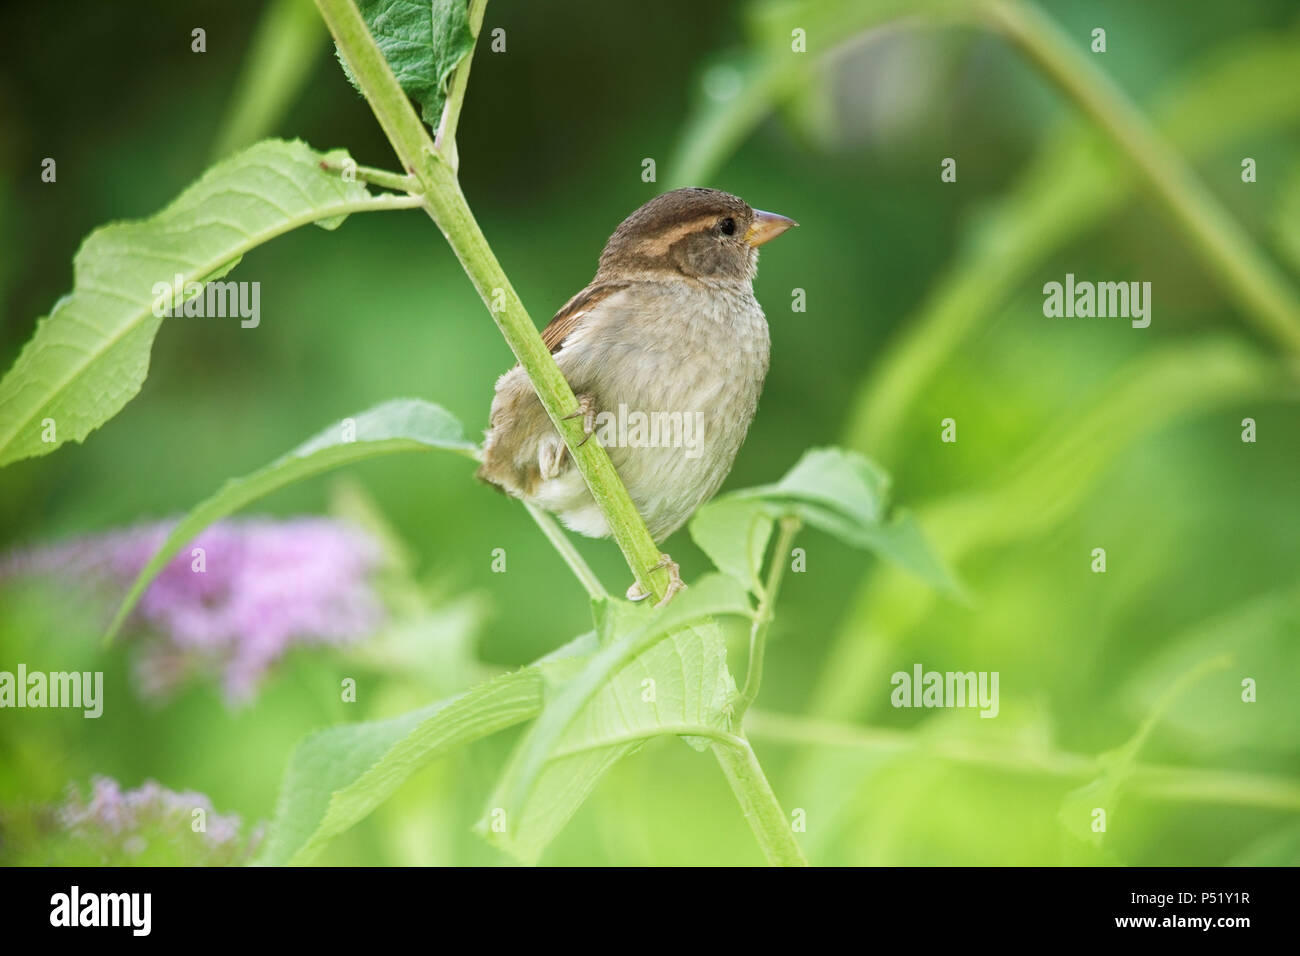 Young sparrow, Passer domesticus - Stock Image